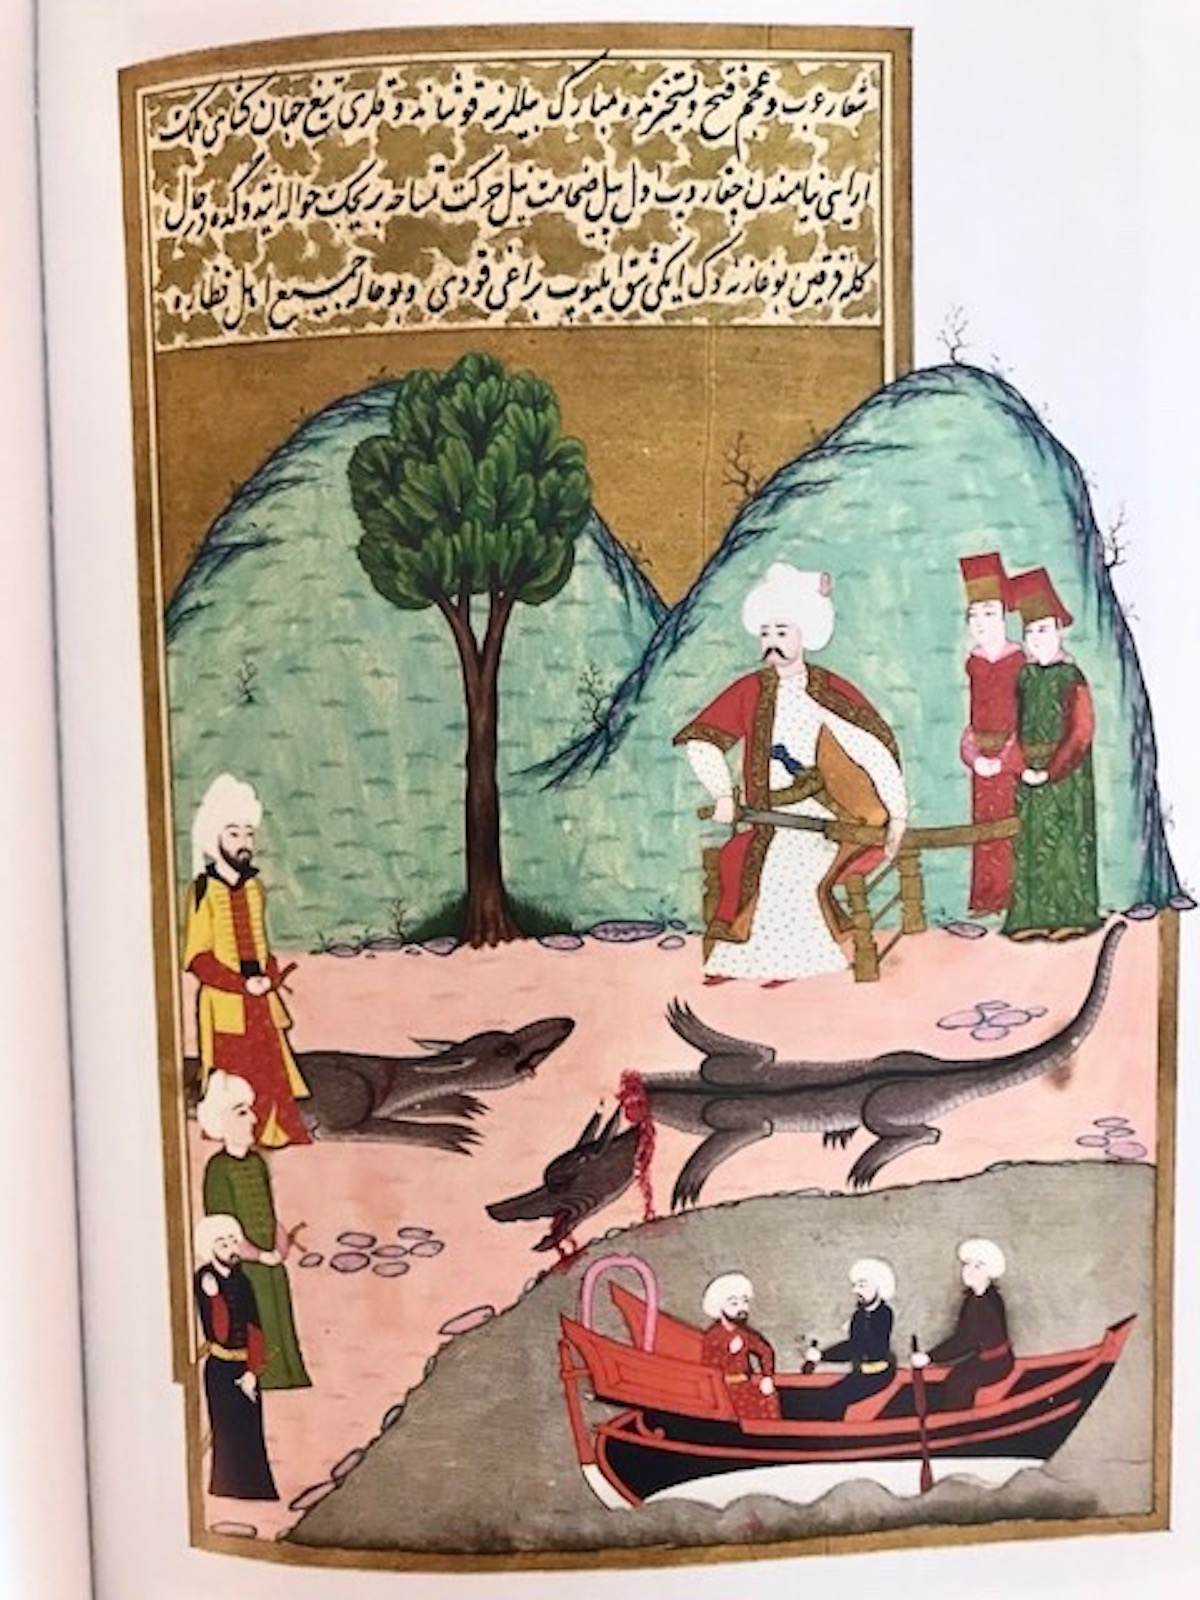 Selim casually hanging out with crocodiles in Egypt. Photo: Miniature included in the book